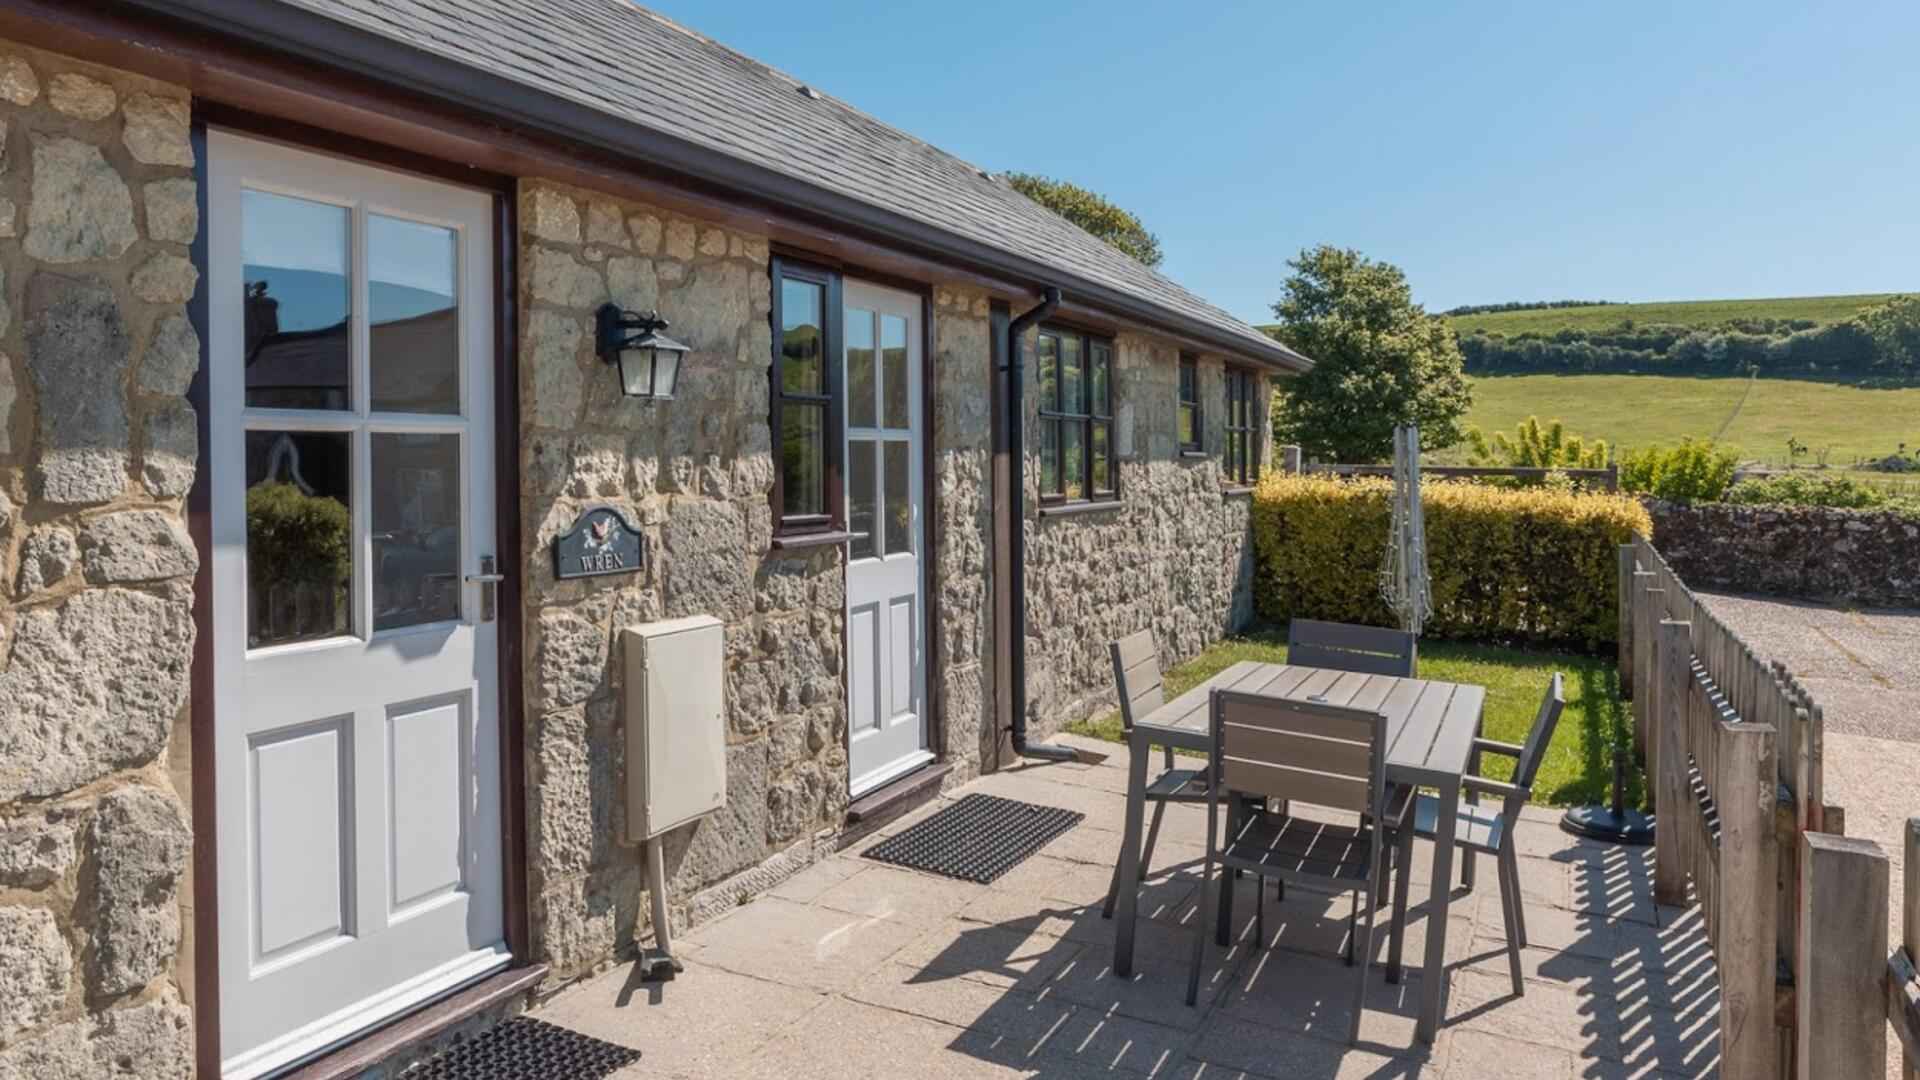 1 Bedroom Private cottage/shared facilities in Isle of Wight, United Kingdom